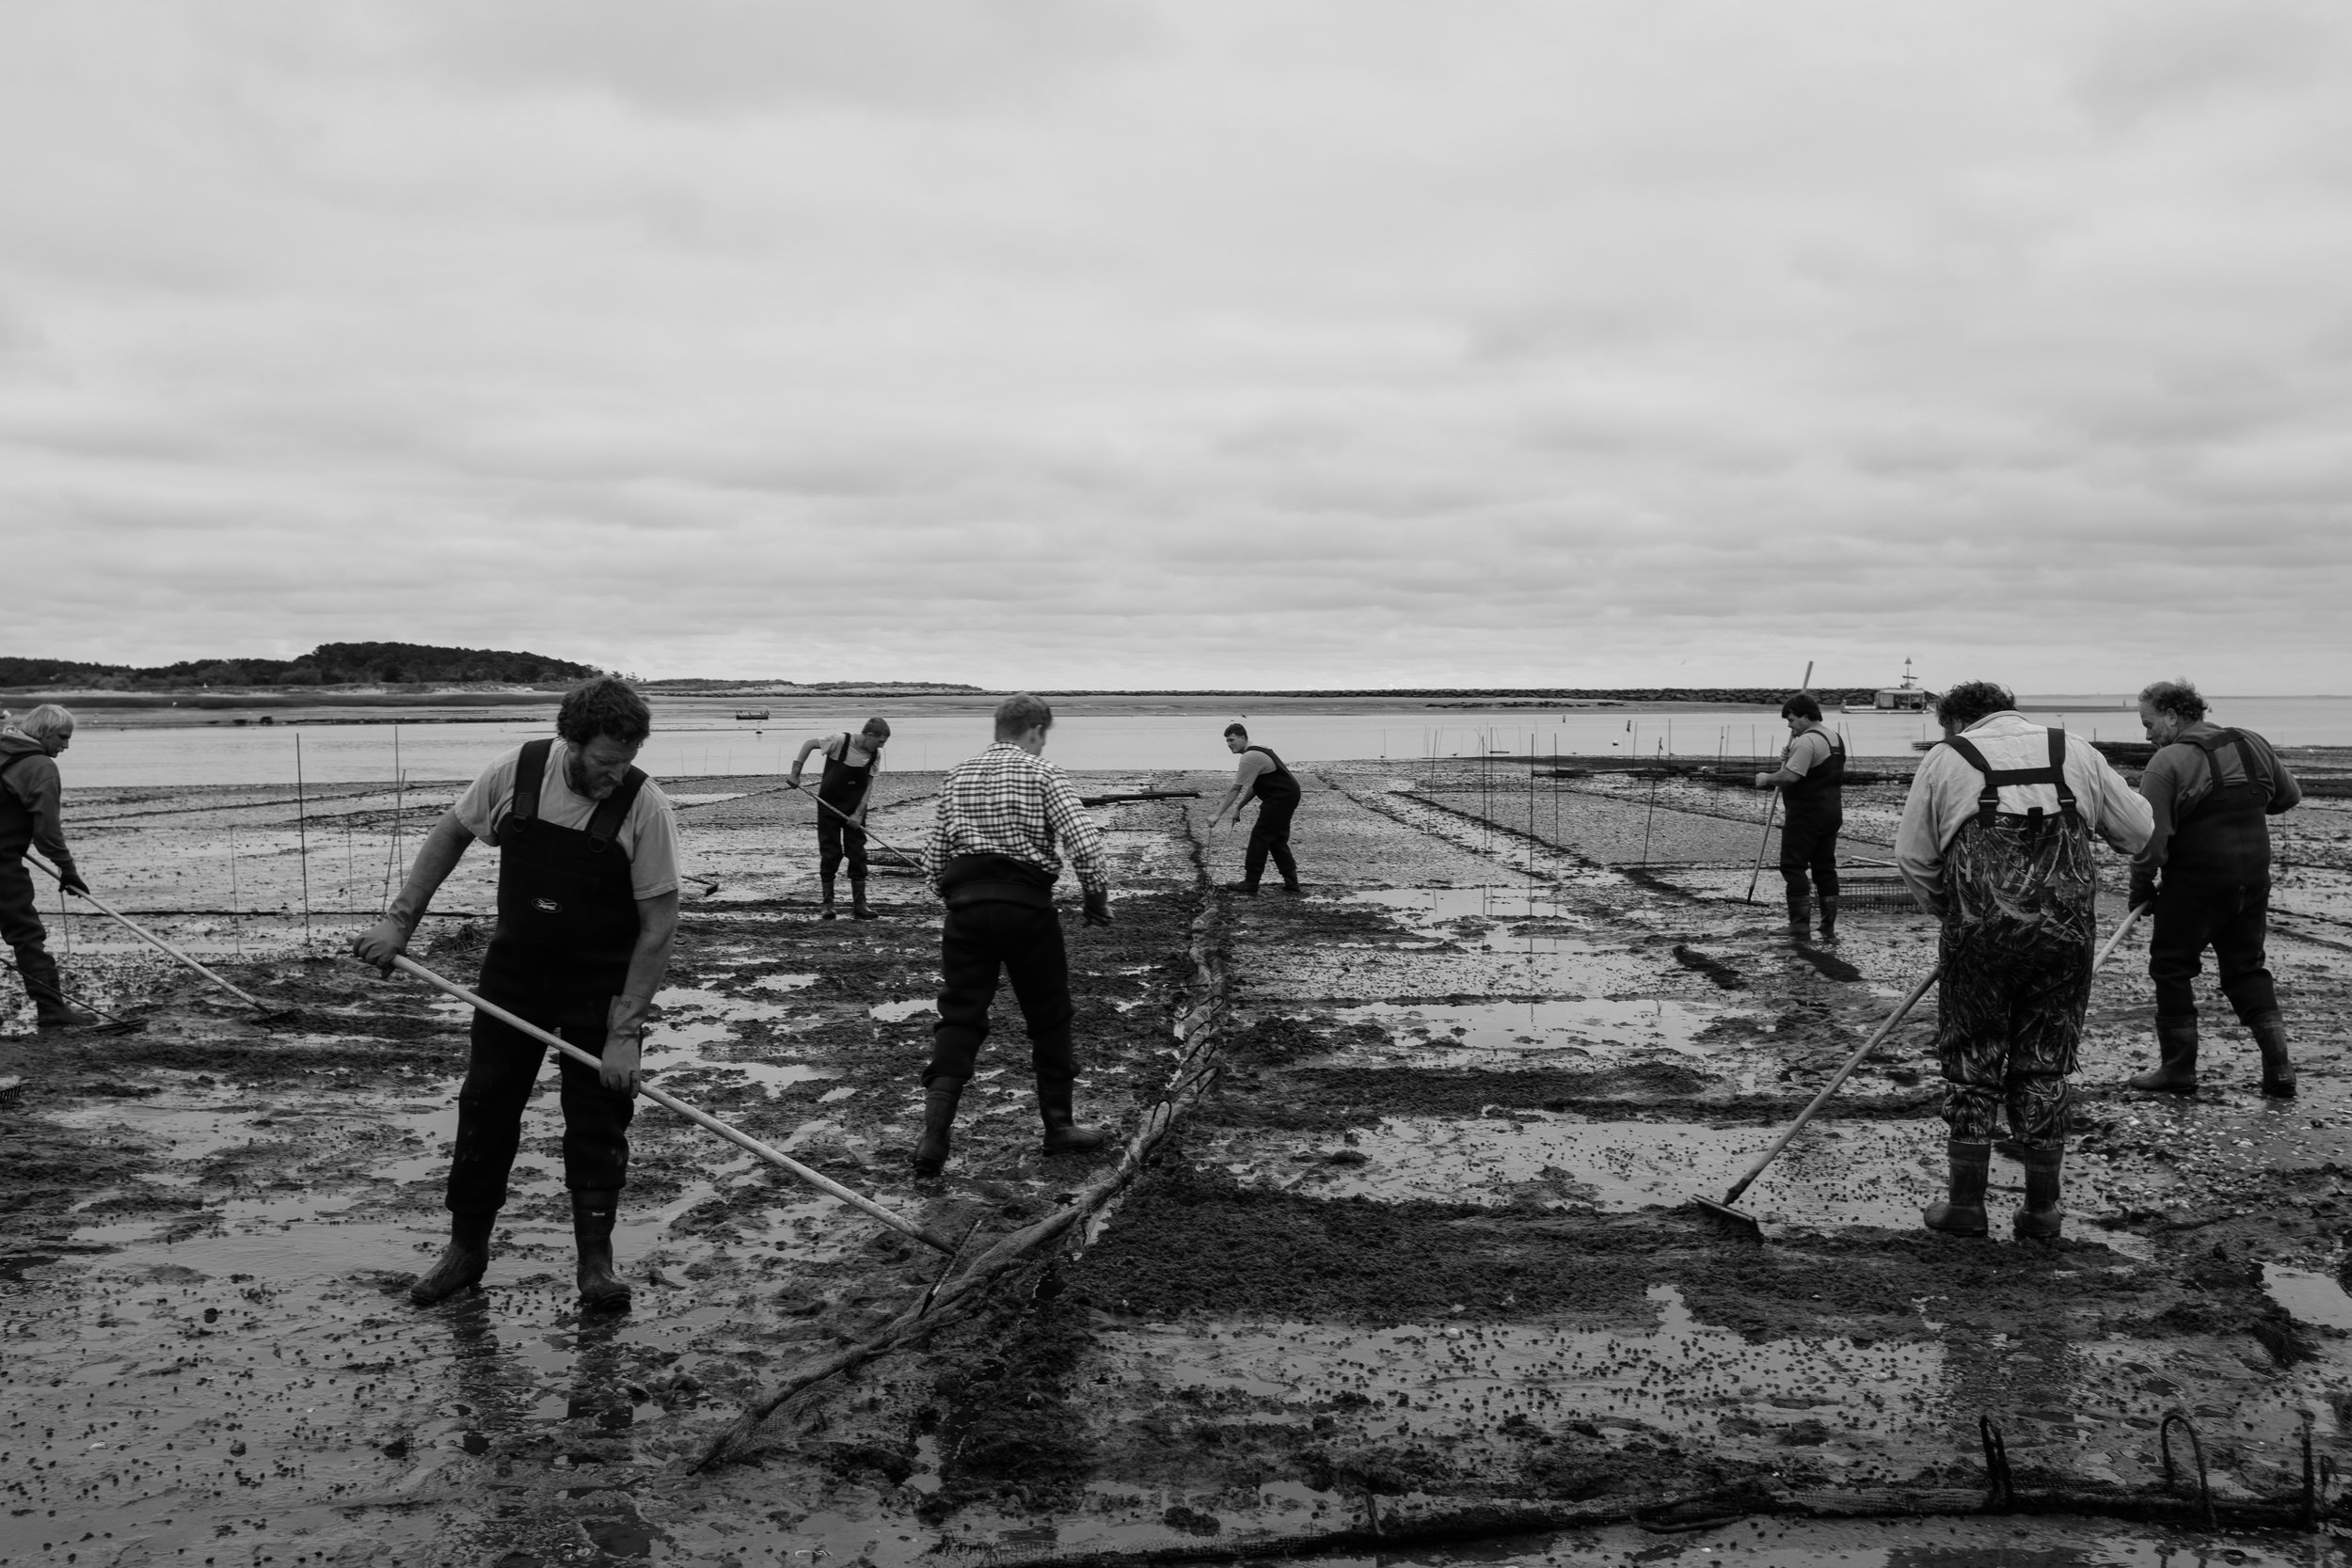 FIRST LIGHT: CAPE COD OYSTERMEN (BOOK)